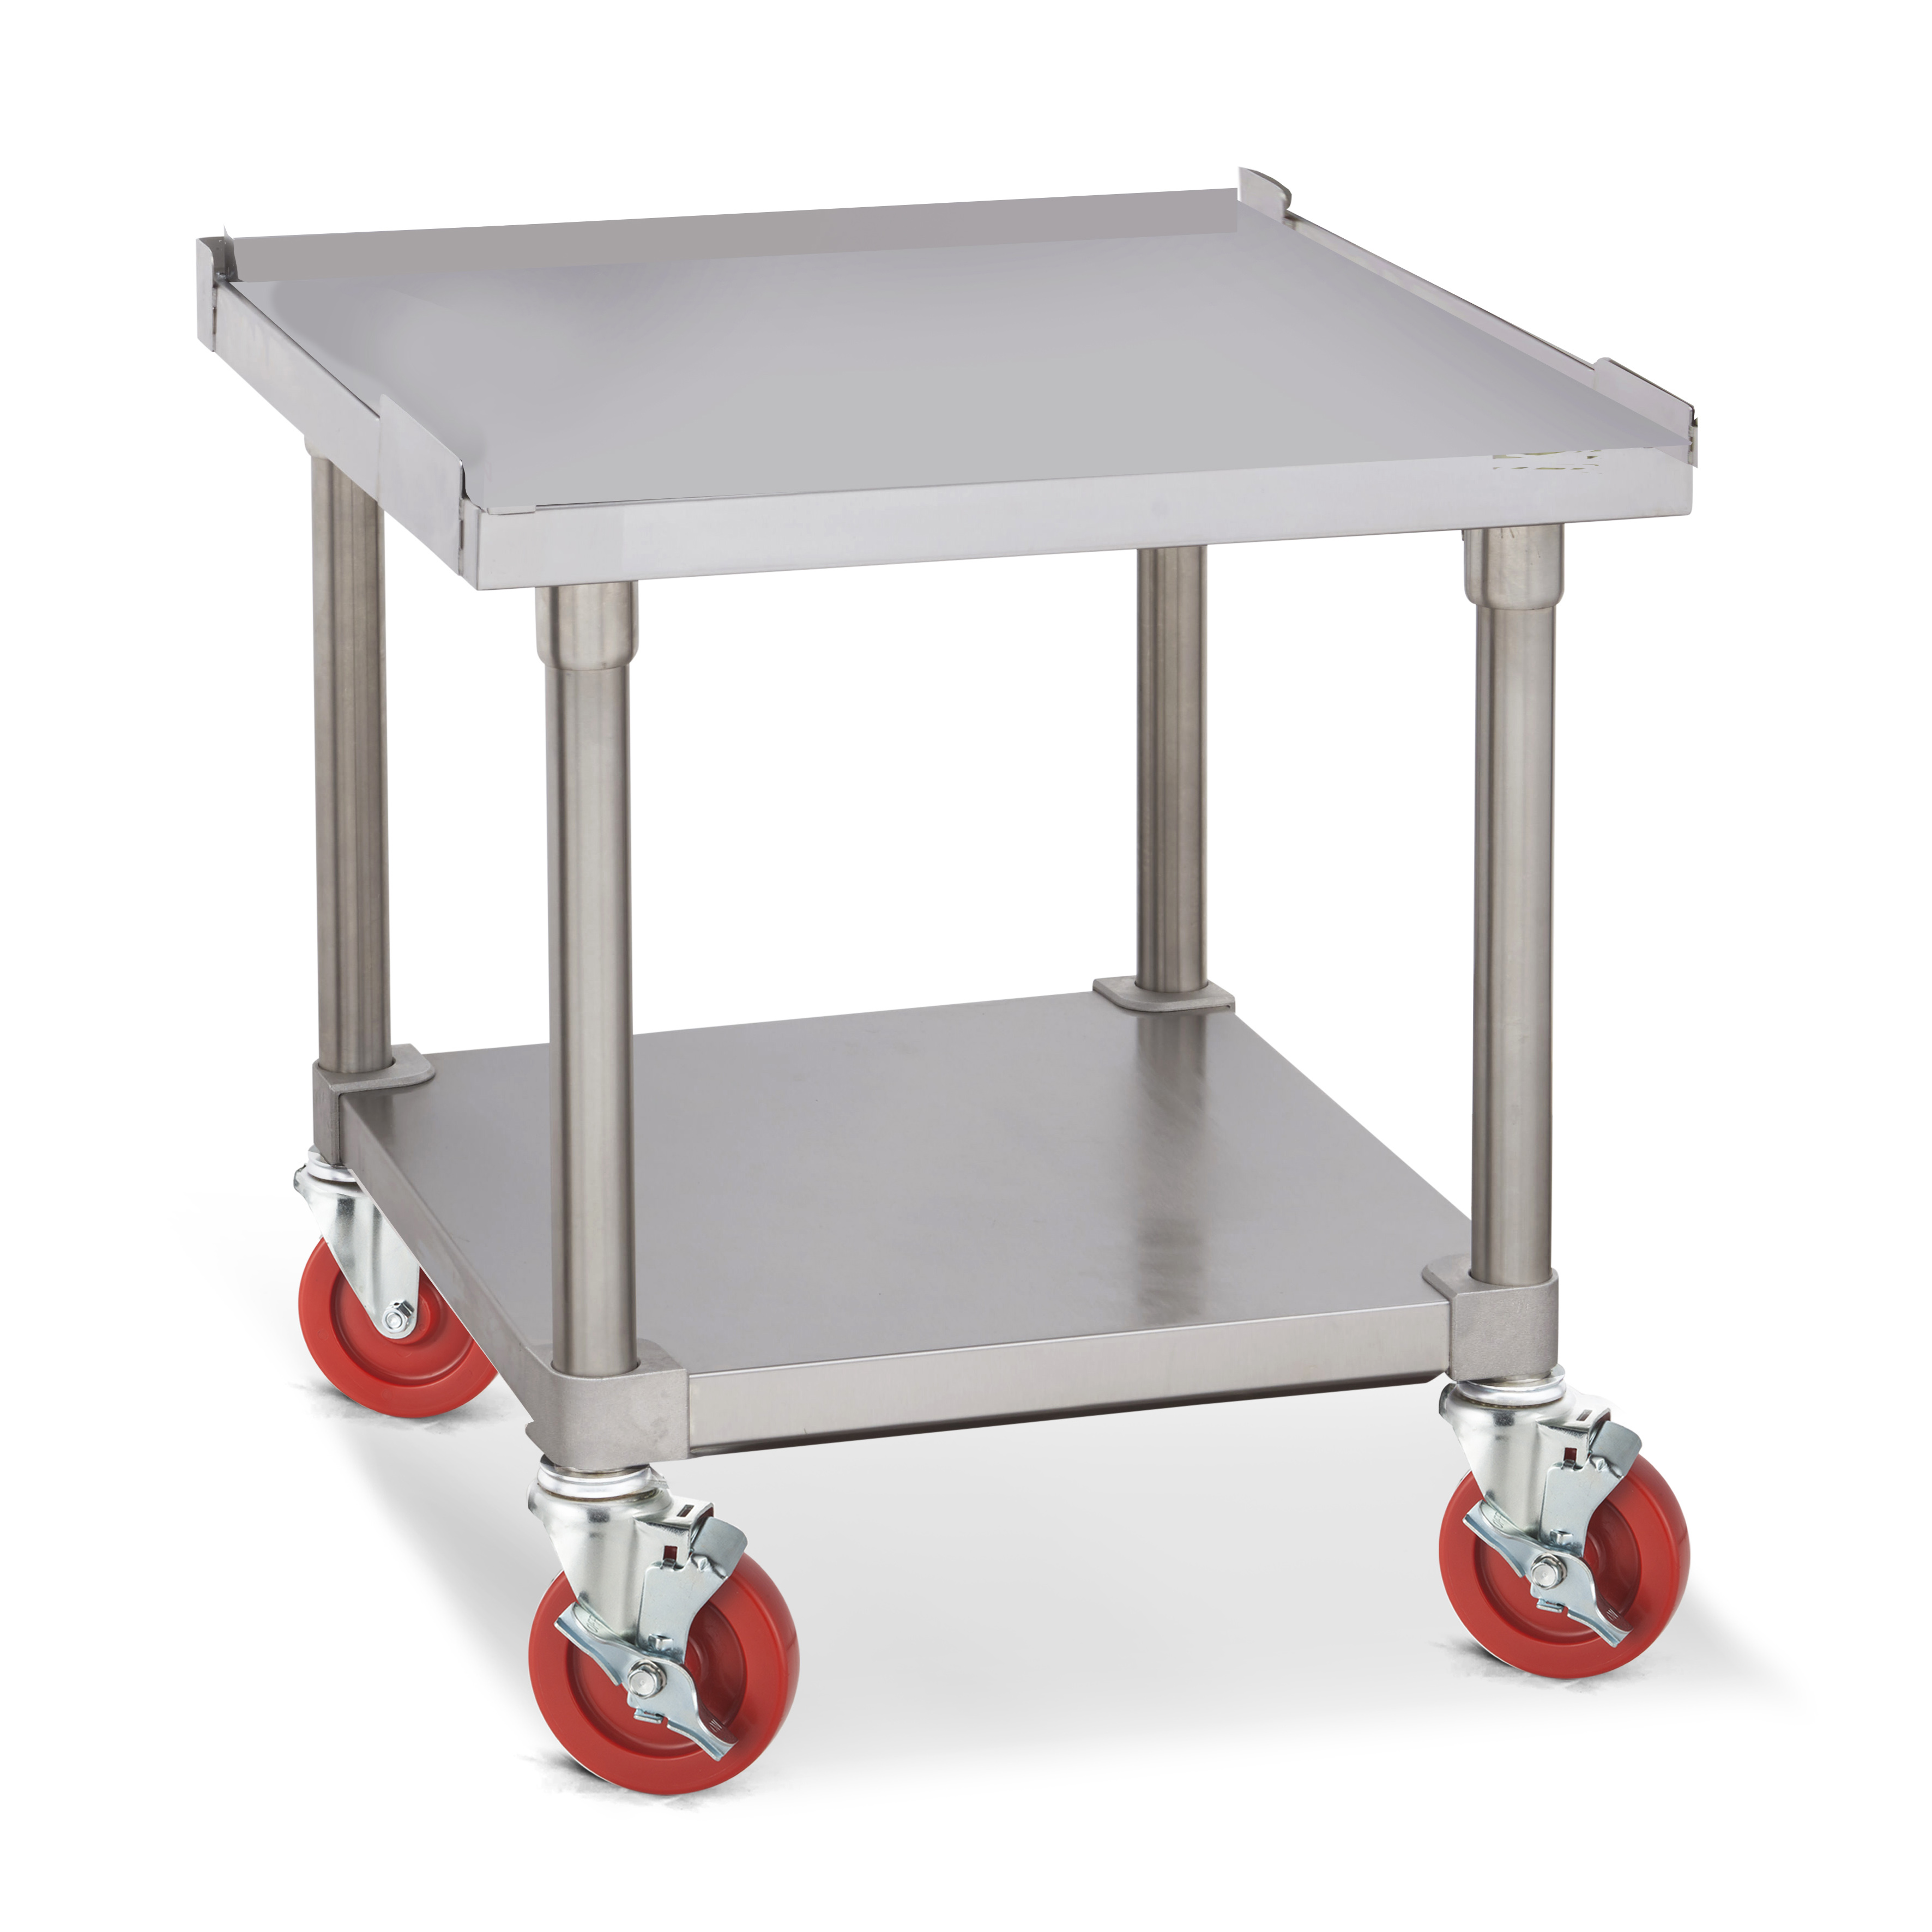 American Range ESS-34 equipment stand, for countertop cooking